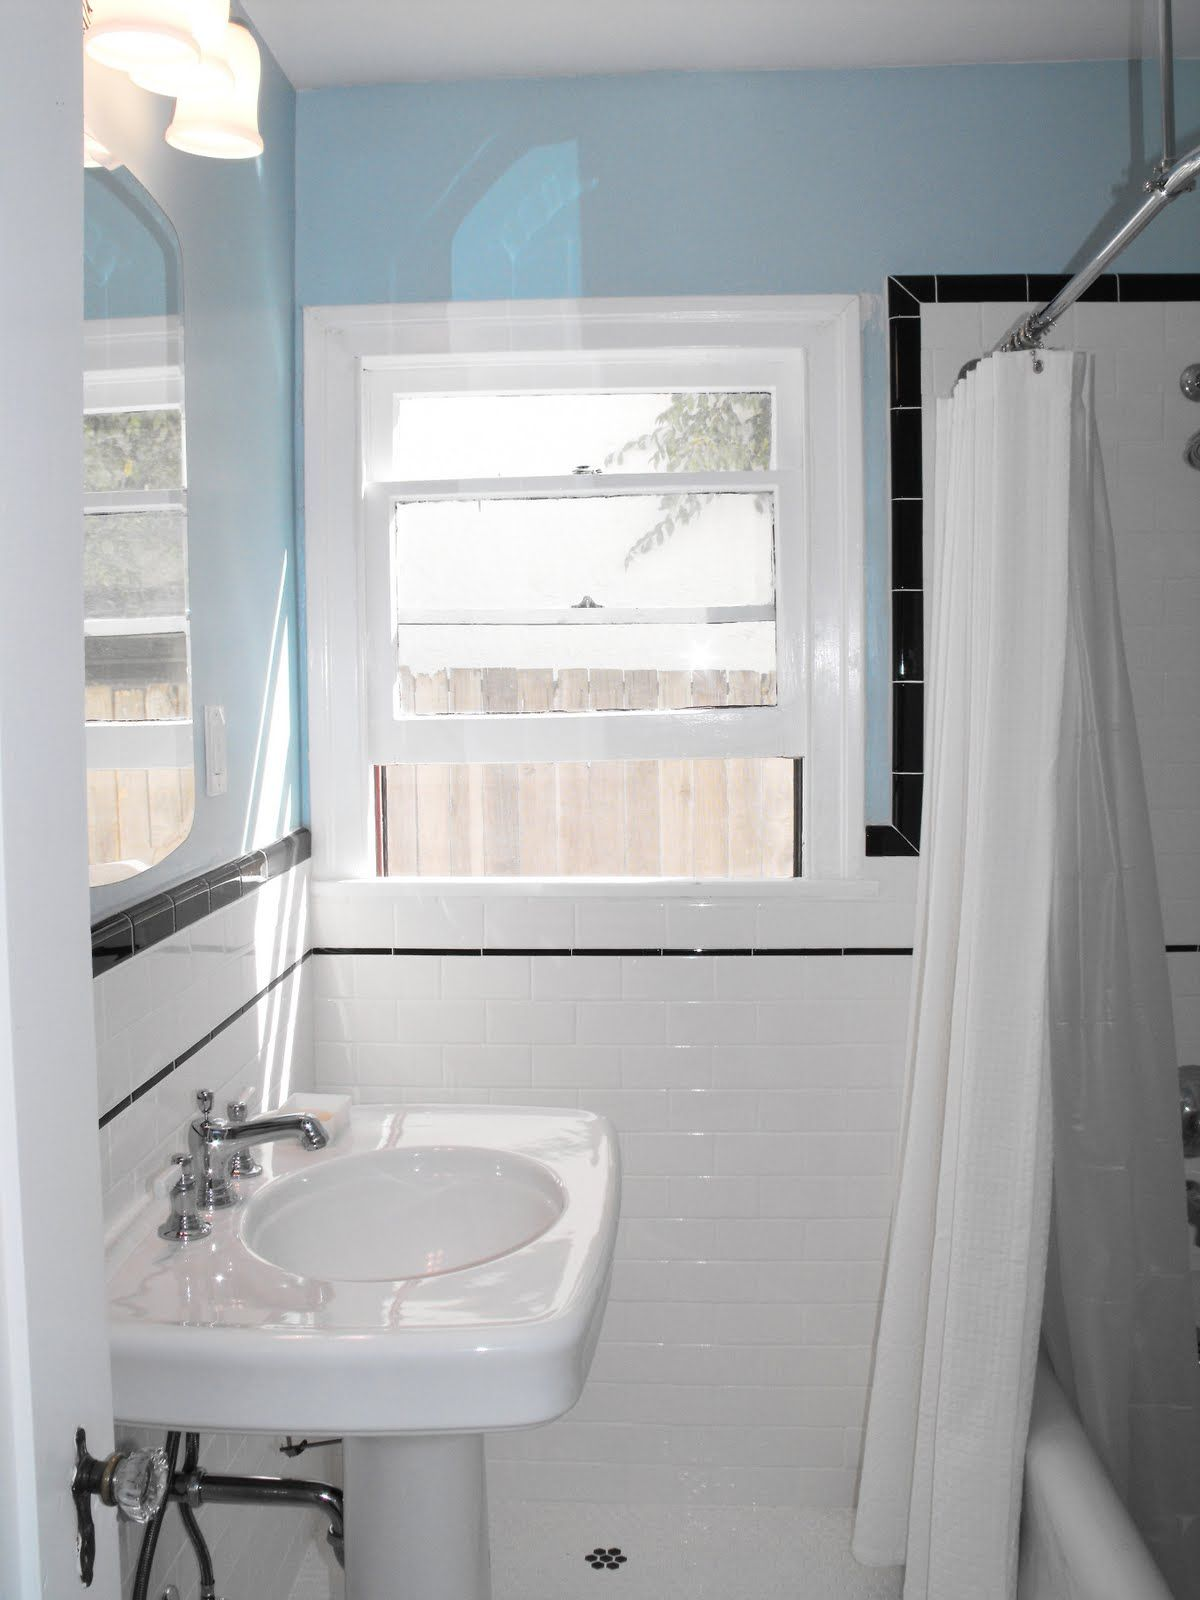 Good Home Construction\'s Renovation Blog: From an Outdated Pink ...